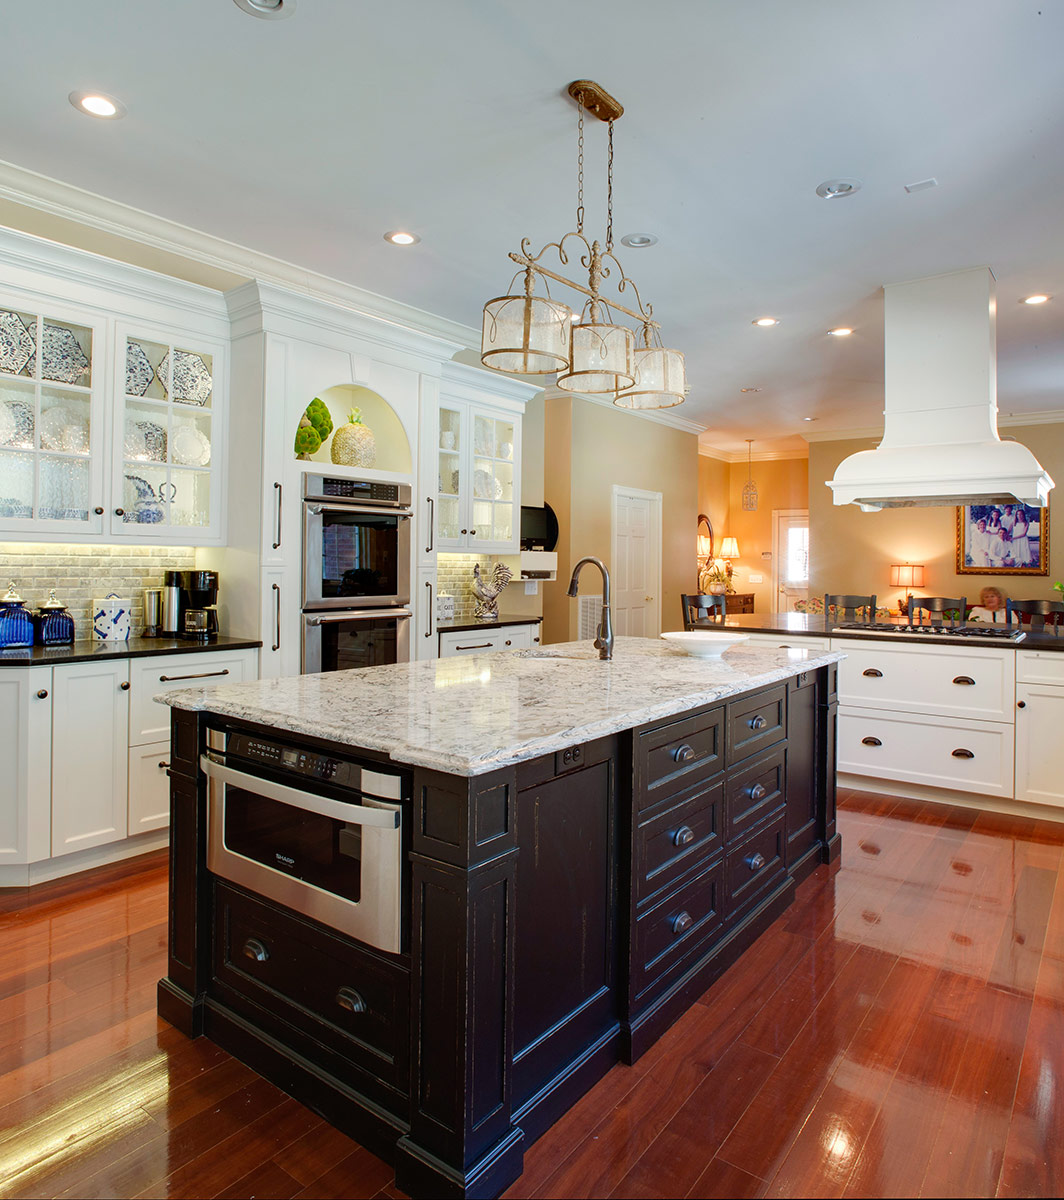 Traditional Kitchen Cabinetry with Rustic Elegance | Plain ...